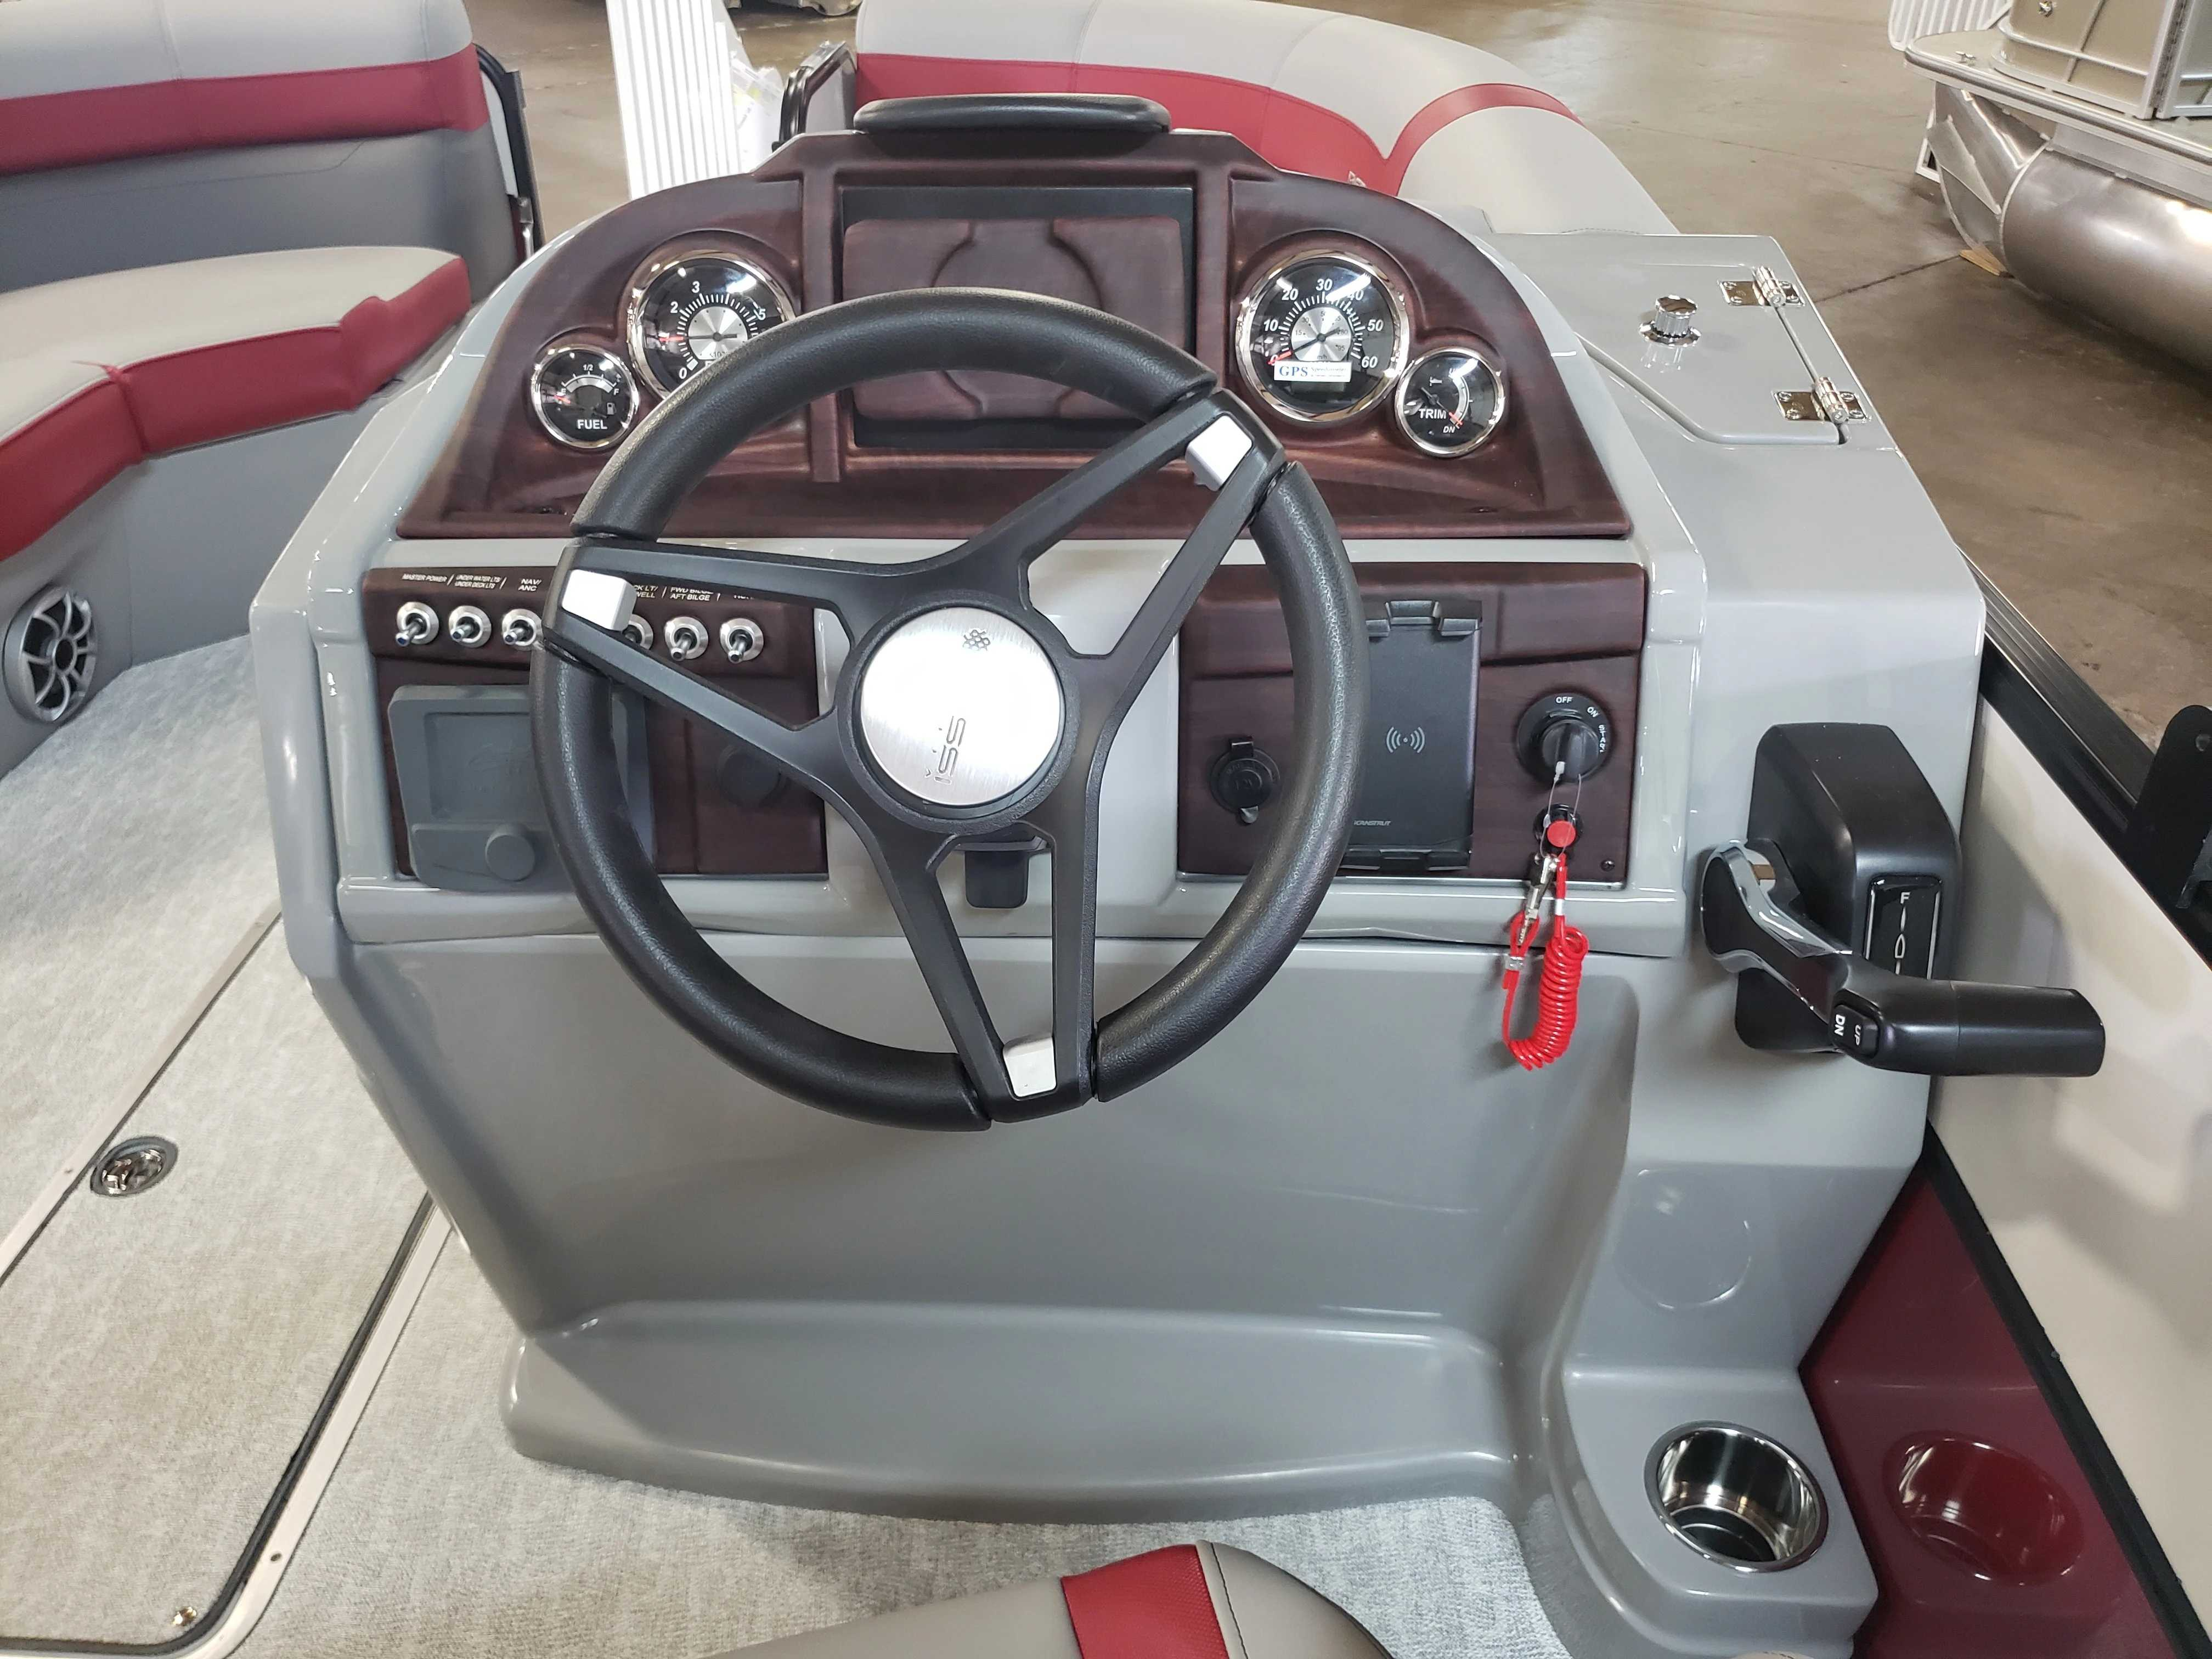 2021 Berkshire Pontoons boat for sale, model of the boat is 24rfx Cts & Image # 5 of 7